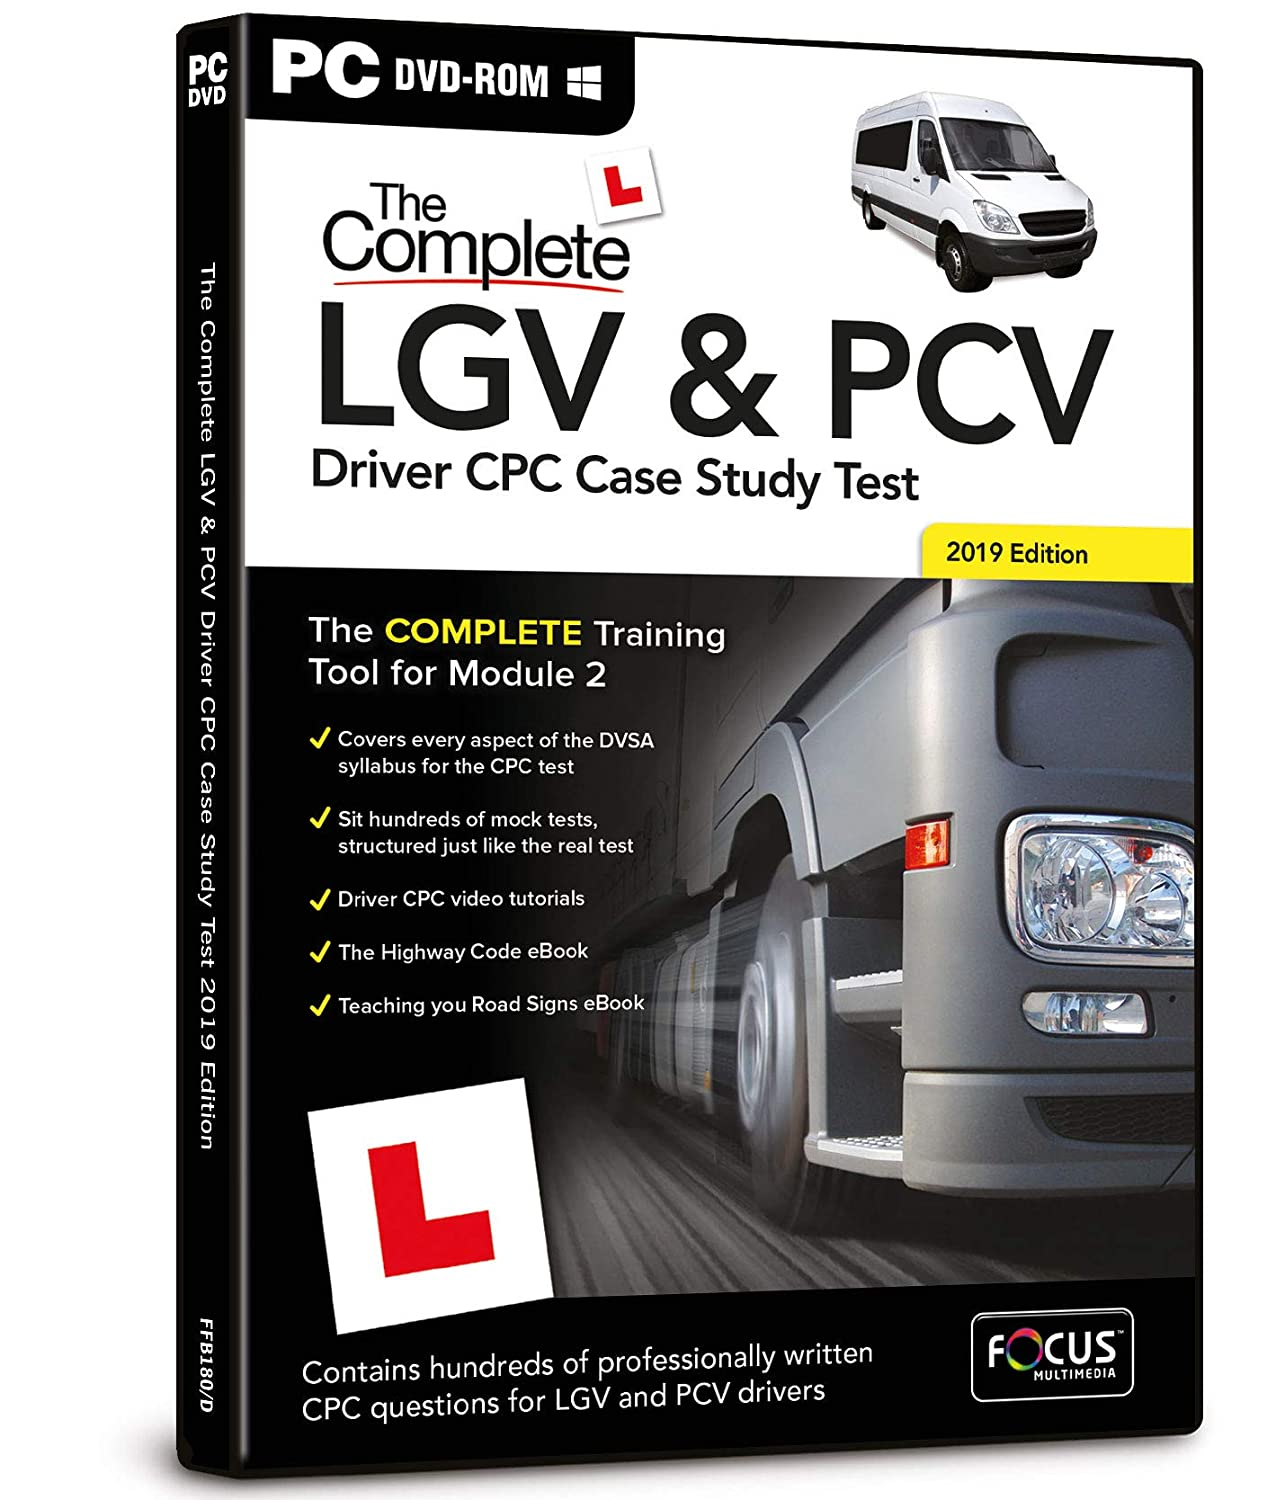 The Complete LGV and PCV Driver CPC Case Study Test: Focus Multimedia:  Amazon.co.uk: Software